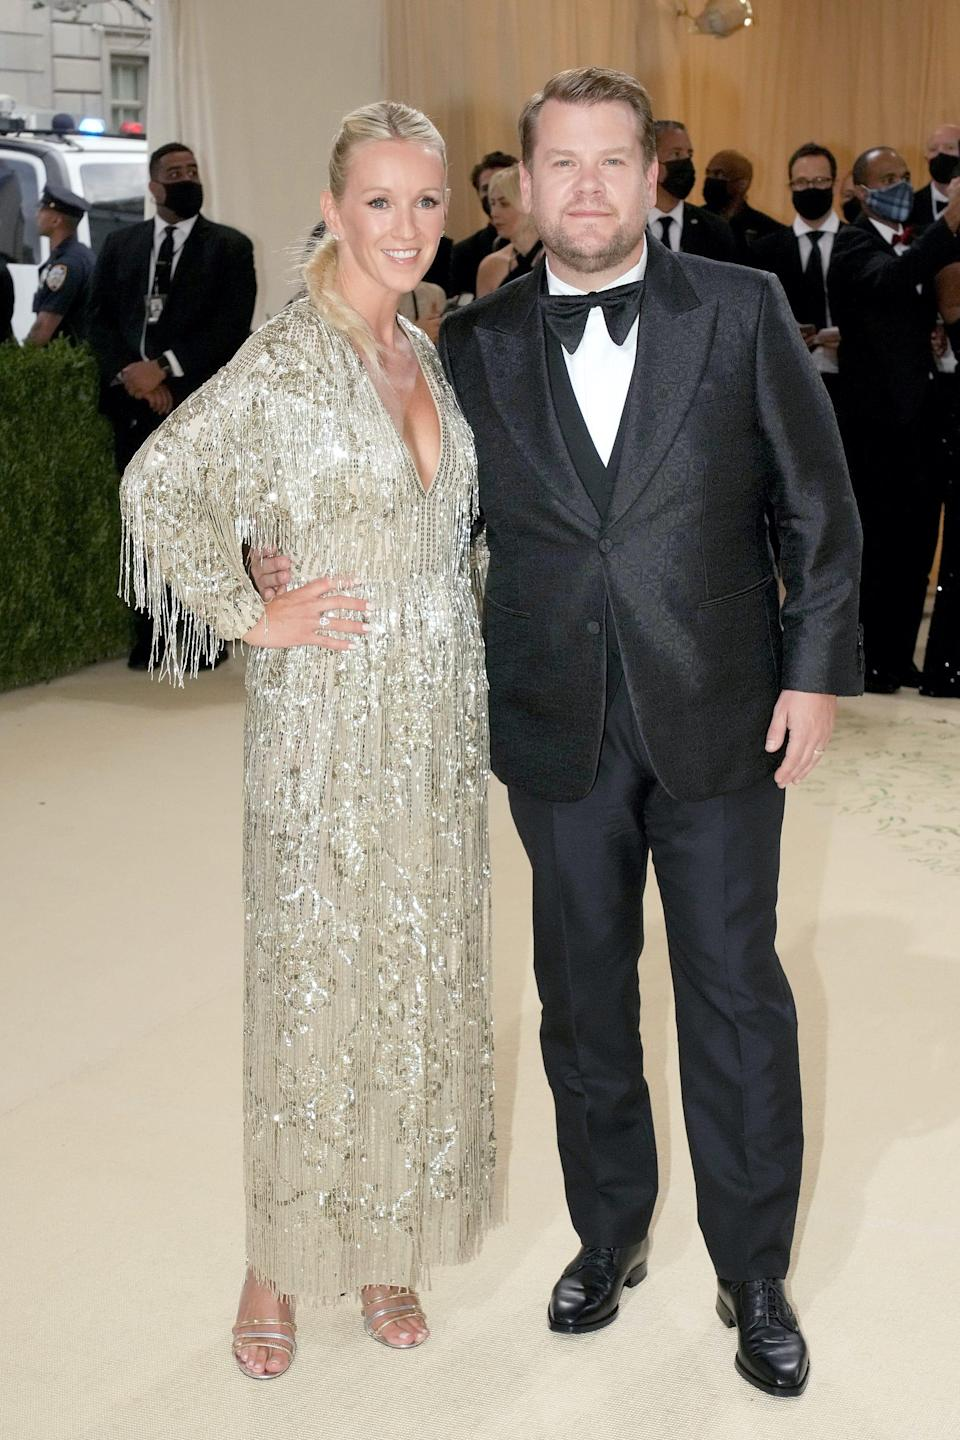 Julia Carey and James Corden stand on a red carpet.